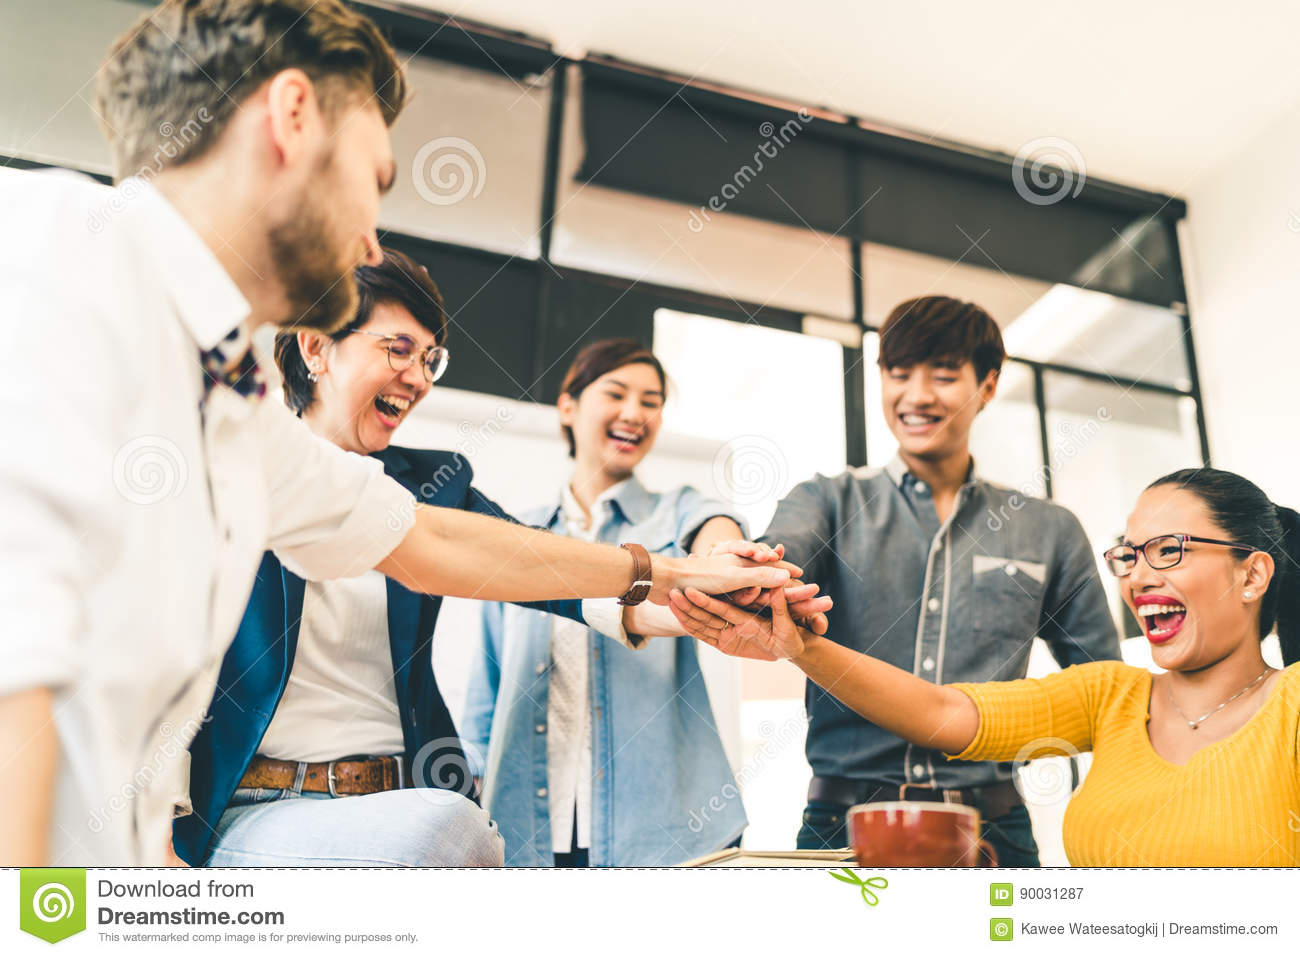 Multiethnic diverse group of happy colleagues join hands together. Creative team, casual business coworker, or college students